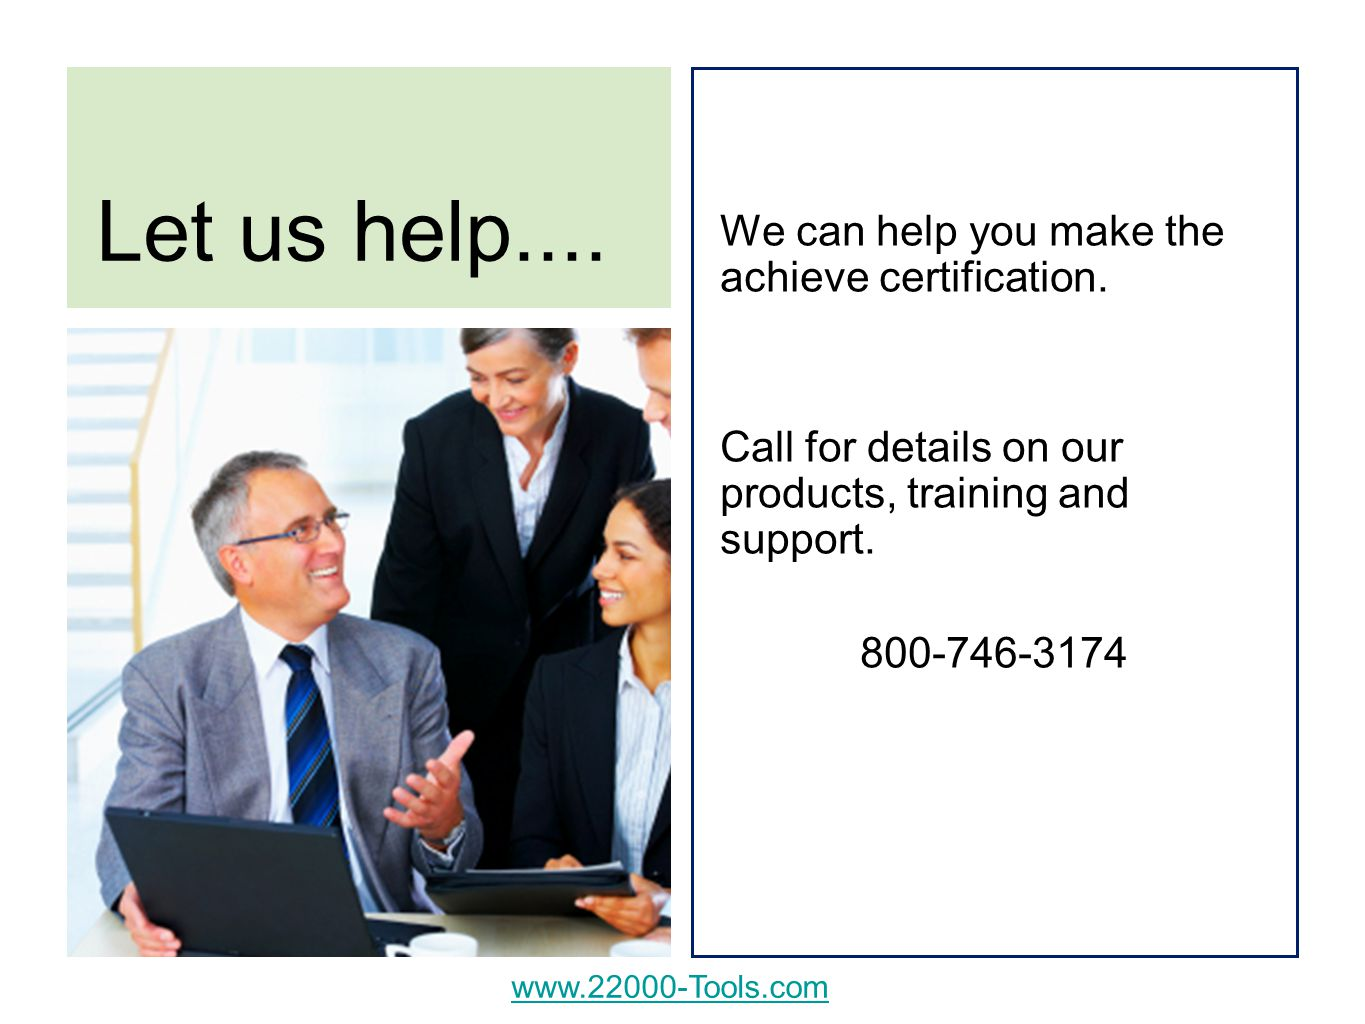 Let us help.... We can help you make the achieve certification.